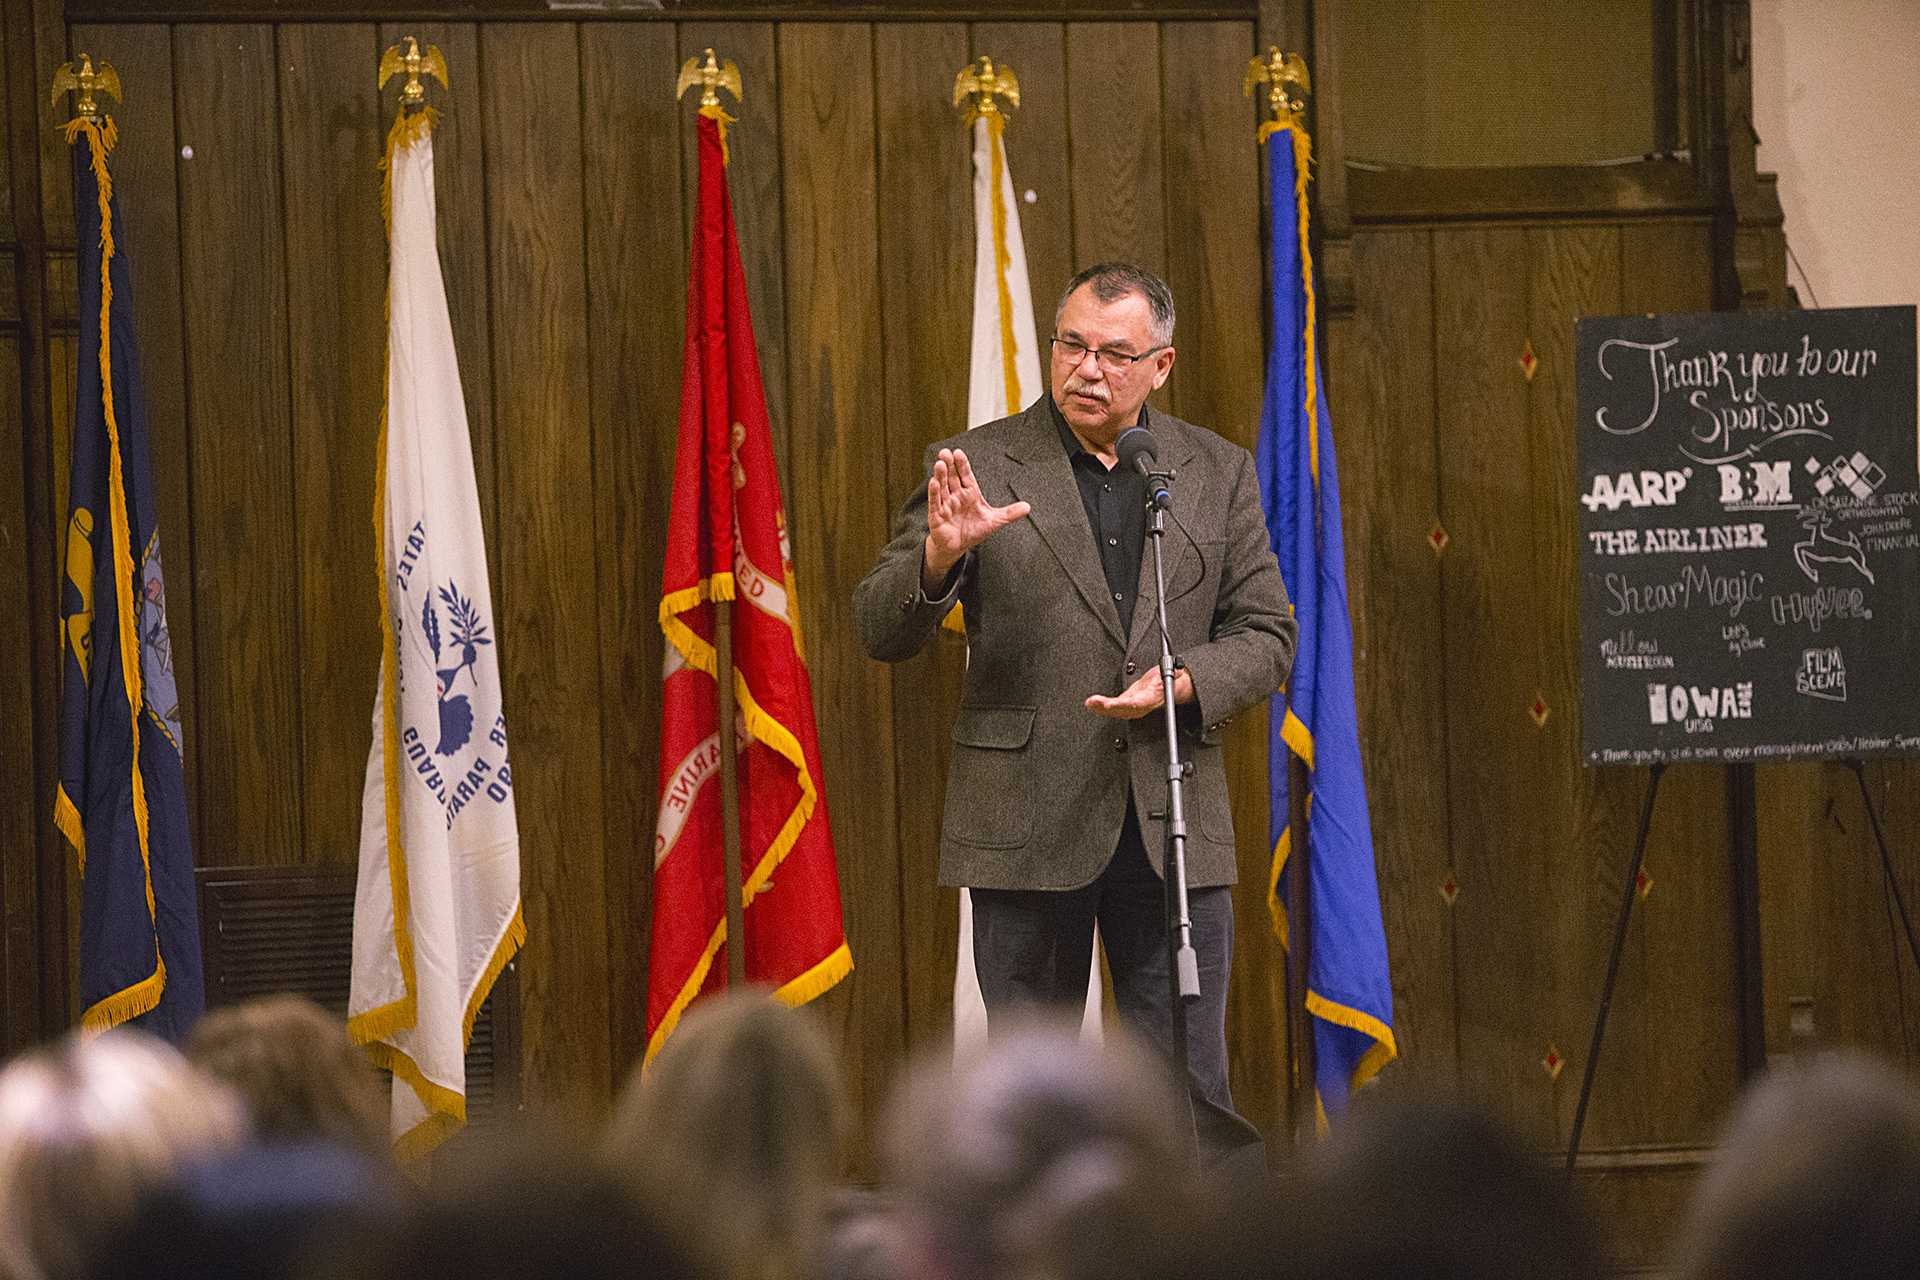 Dr. Jon Kerstetter speaks at a fundraiser for Iowa Watch on Thursday, Nov. 9, 2017. Dr. Kersetter spoke about his experiences as a military doctor and about dealing with memory issues resulting from complications of injuries sustained while serving. (Nick Rohlman/The Daily Iowan)